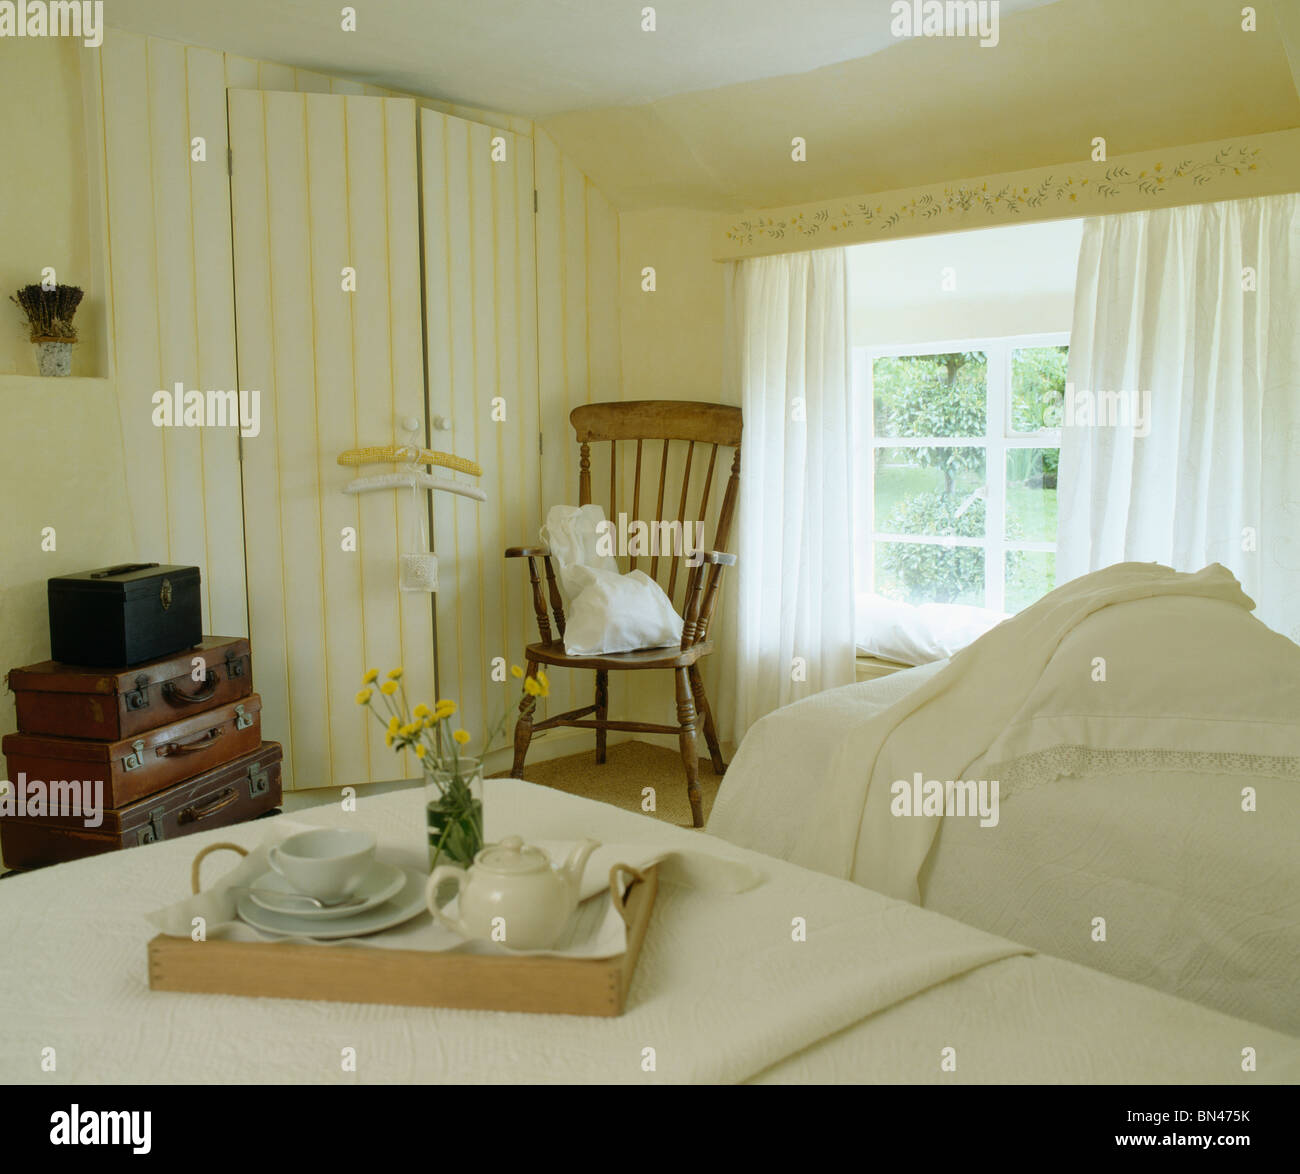 Stock Photo   Teapot and cup on tray on bed in cream country bedroom with  white curtains on window and yellow stripes painted on wardrobe door. Teapot and cup on tray on bed in cream country bedroom with white